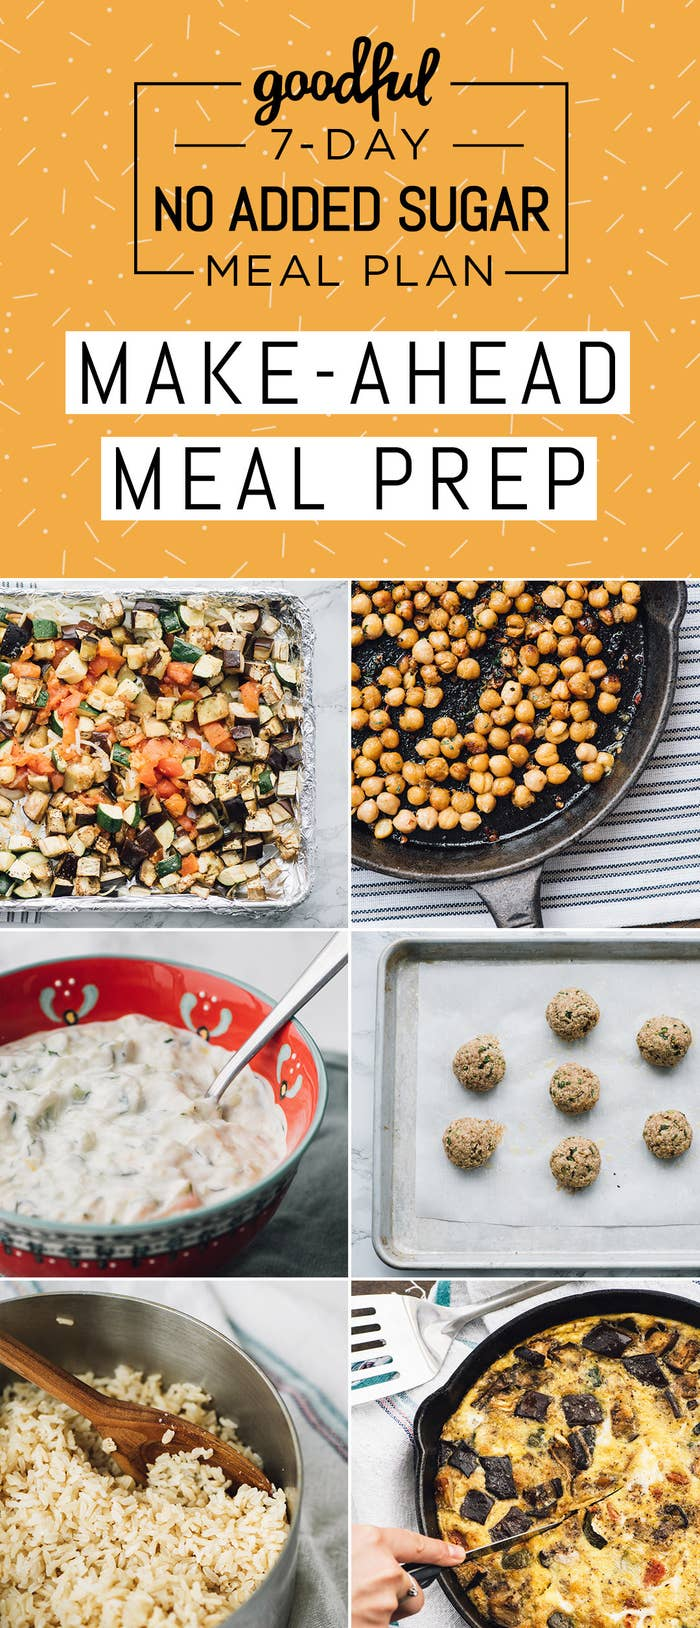 this meal prep plan will set you up for a week of healthy eats